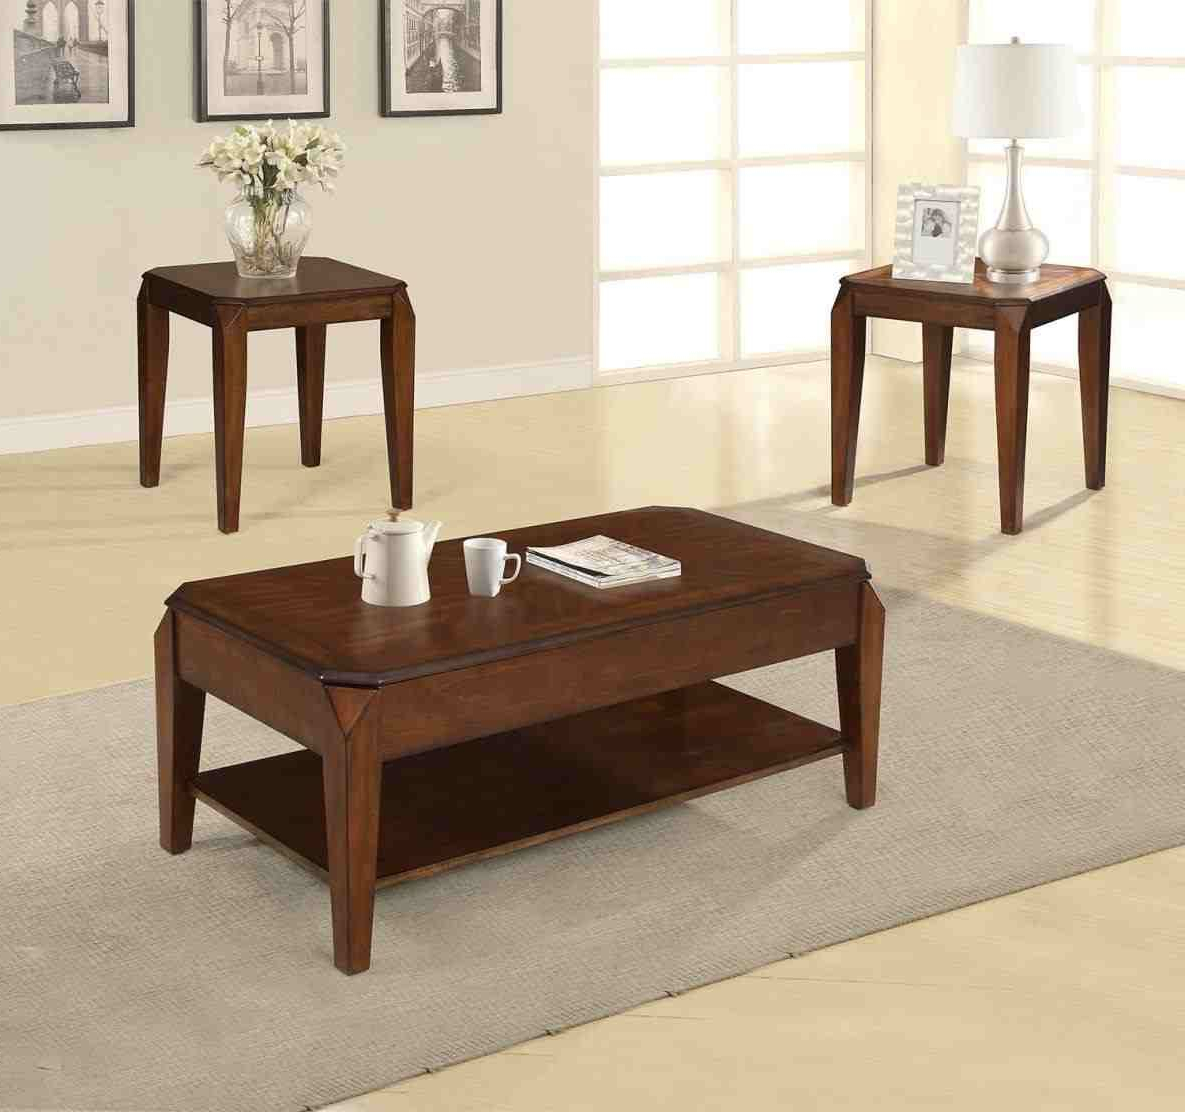 Swell Round Coffee Tables Pertaining To 2018 Duntara Coffee Table With Lift Top – Swell Round Coffee Table (View 12 of 20)